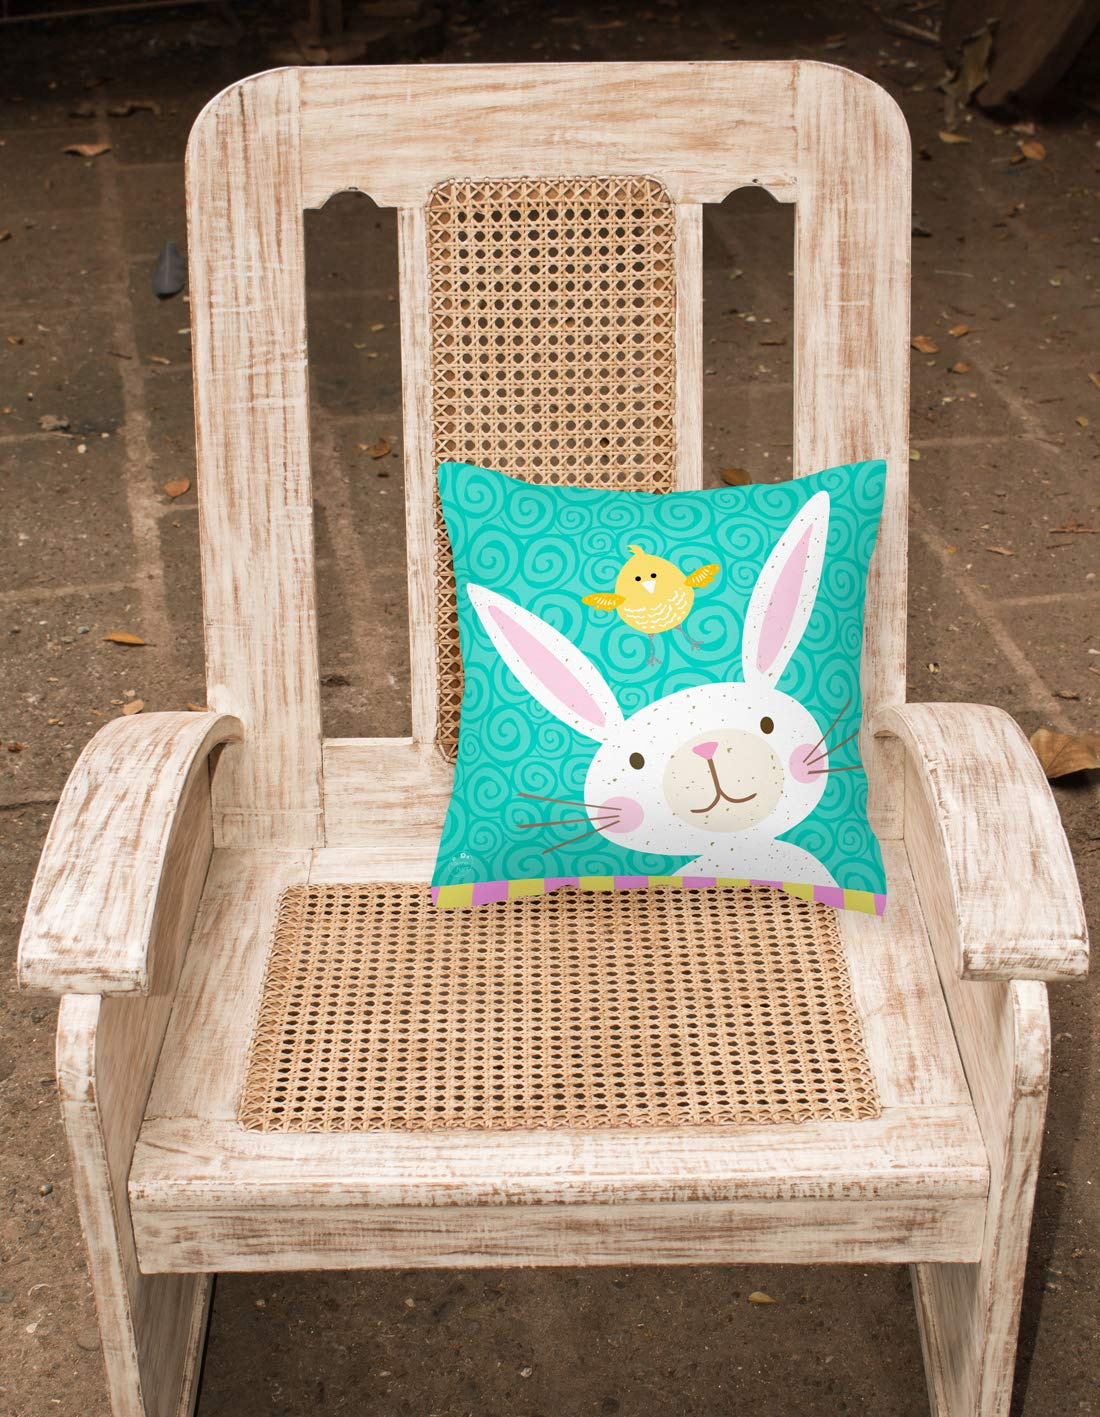 Carolines Treasures VHA3032PW1818 Happy Easter Rabbit Fabric Decorative Pillow Patio-Furniture-Pillows Multicolor